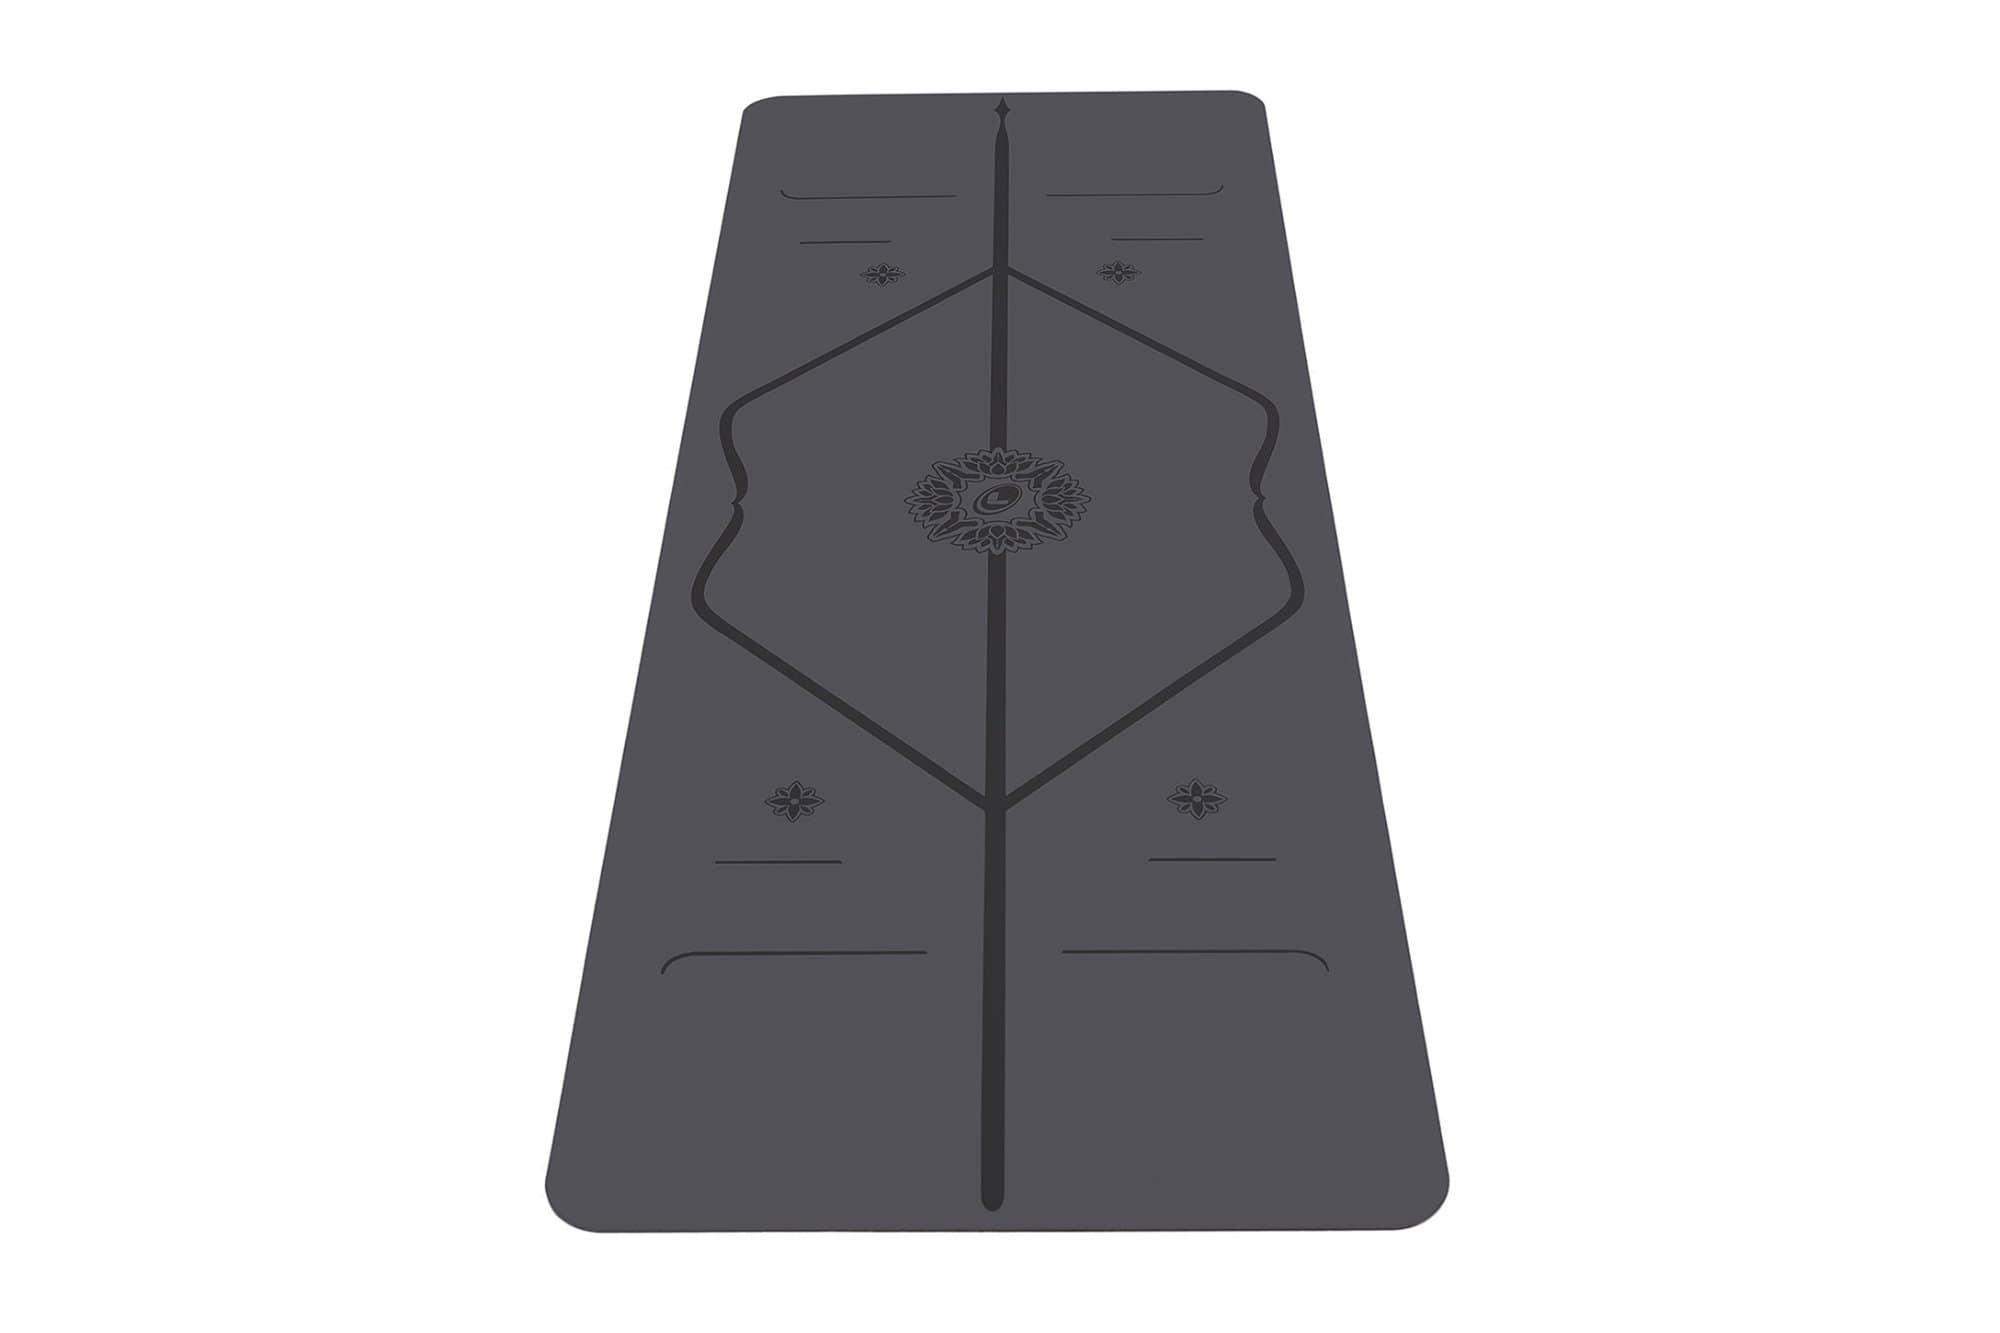 Portrait view of Gratitude Grey Yoga mat from Liforme